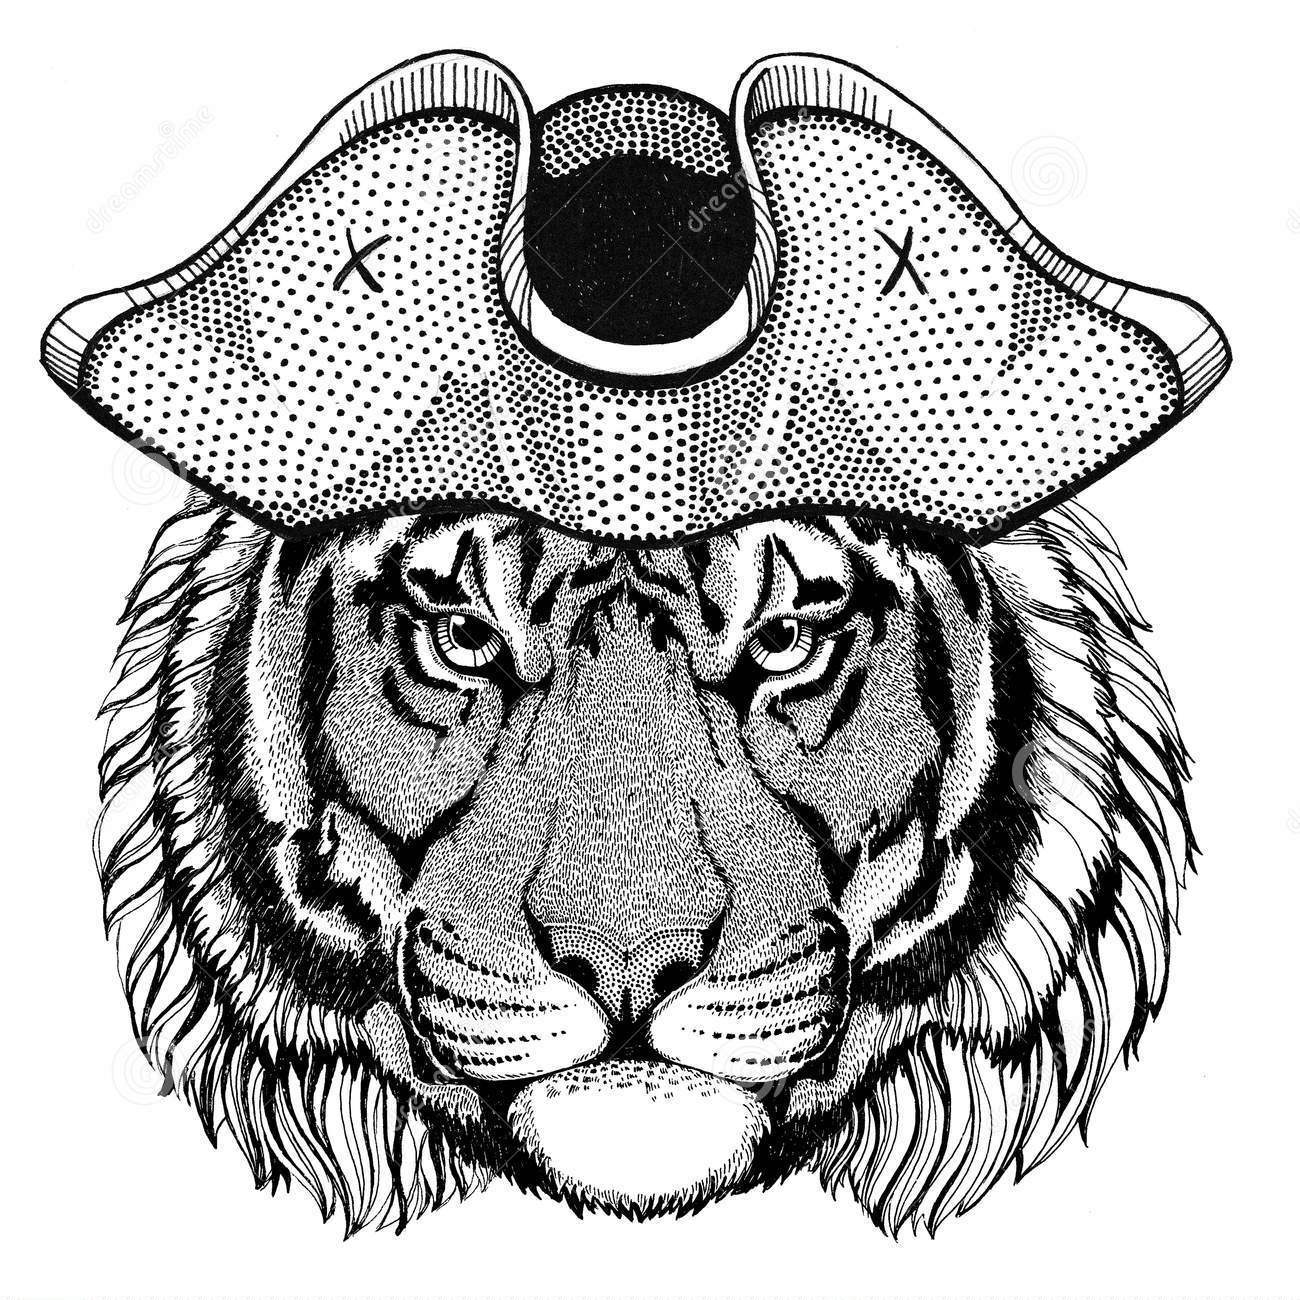 https://www.southhadleyschools.org/cms/lib/MA02202349/Centricity/Domain/1106/wild-tiger-wearing-pirate-hat-cocked-hat-tricorn-sailor-seaman-mariner-seafarer-animal-cocket-93889198.jpg